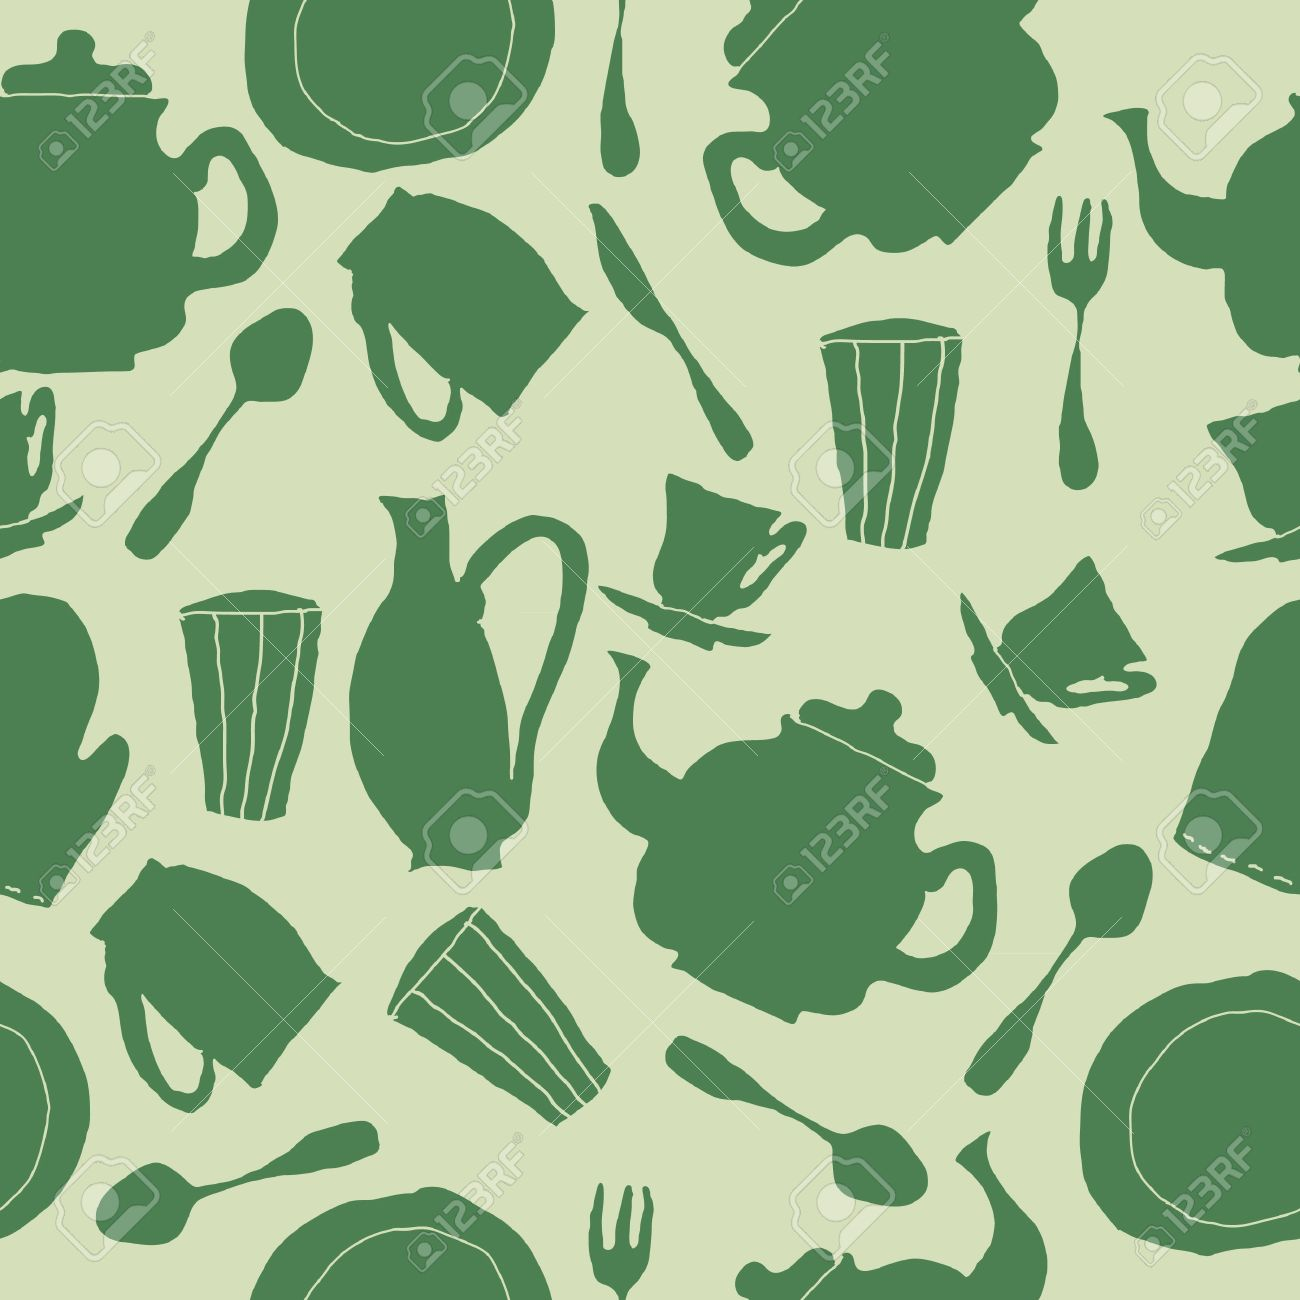 Kitchen wallpaper retro - Seamless Kitchen Glasses Teapots Forks And Spoons In Funky Retro Style Stock Vector